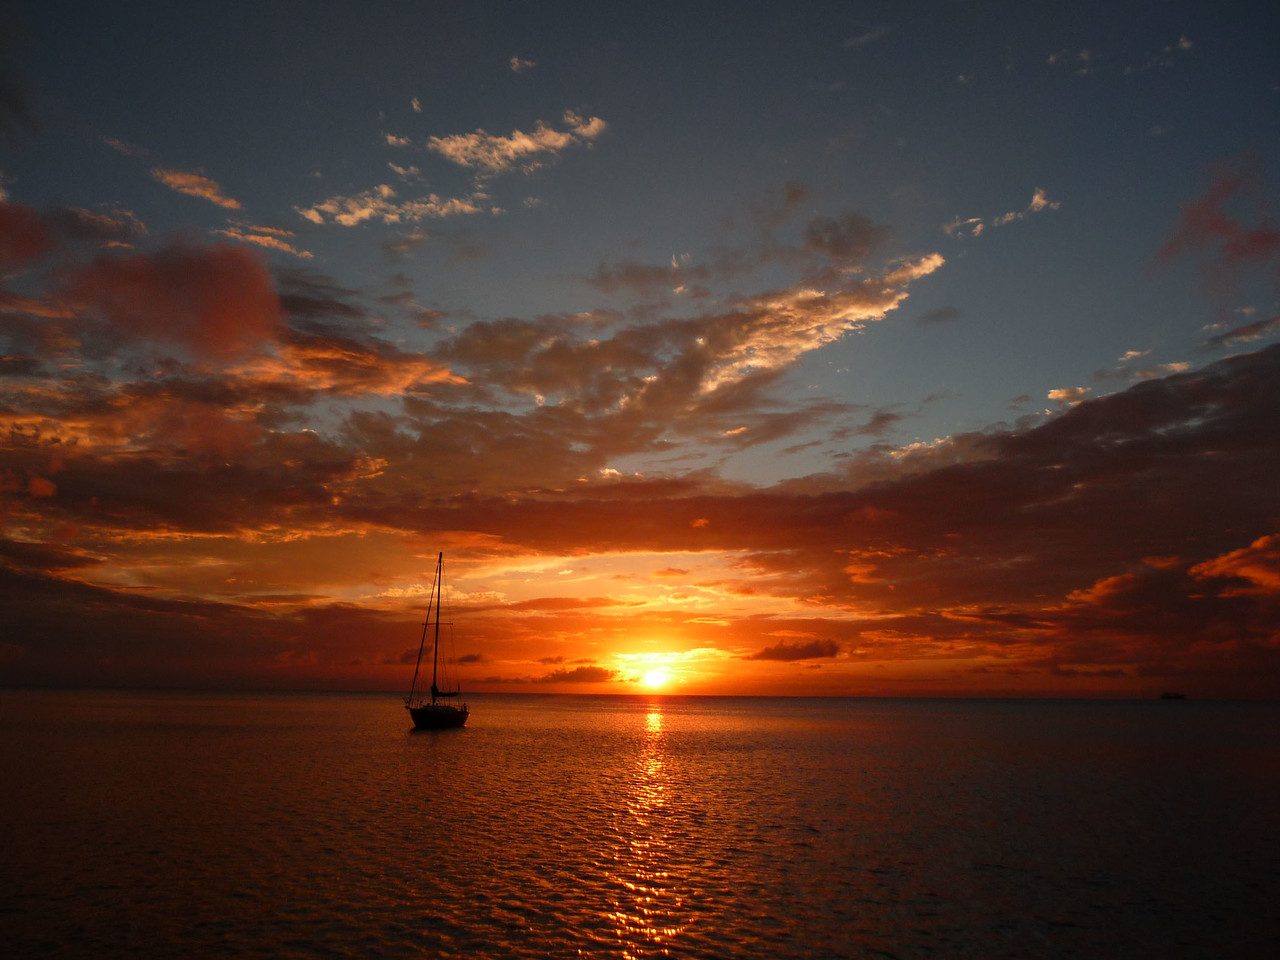 """""""A Gorgeous Sunset"""" while anchored in in the lee of the Island of Nevis. 2011 - Thomas R. Hefty, Jr"""